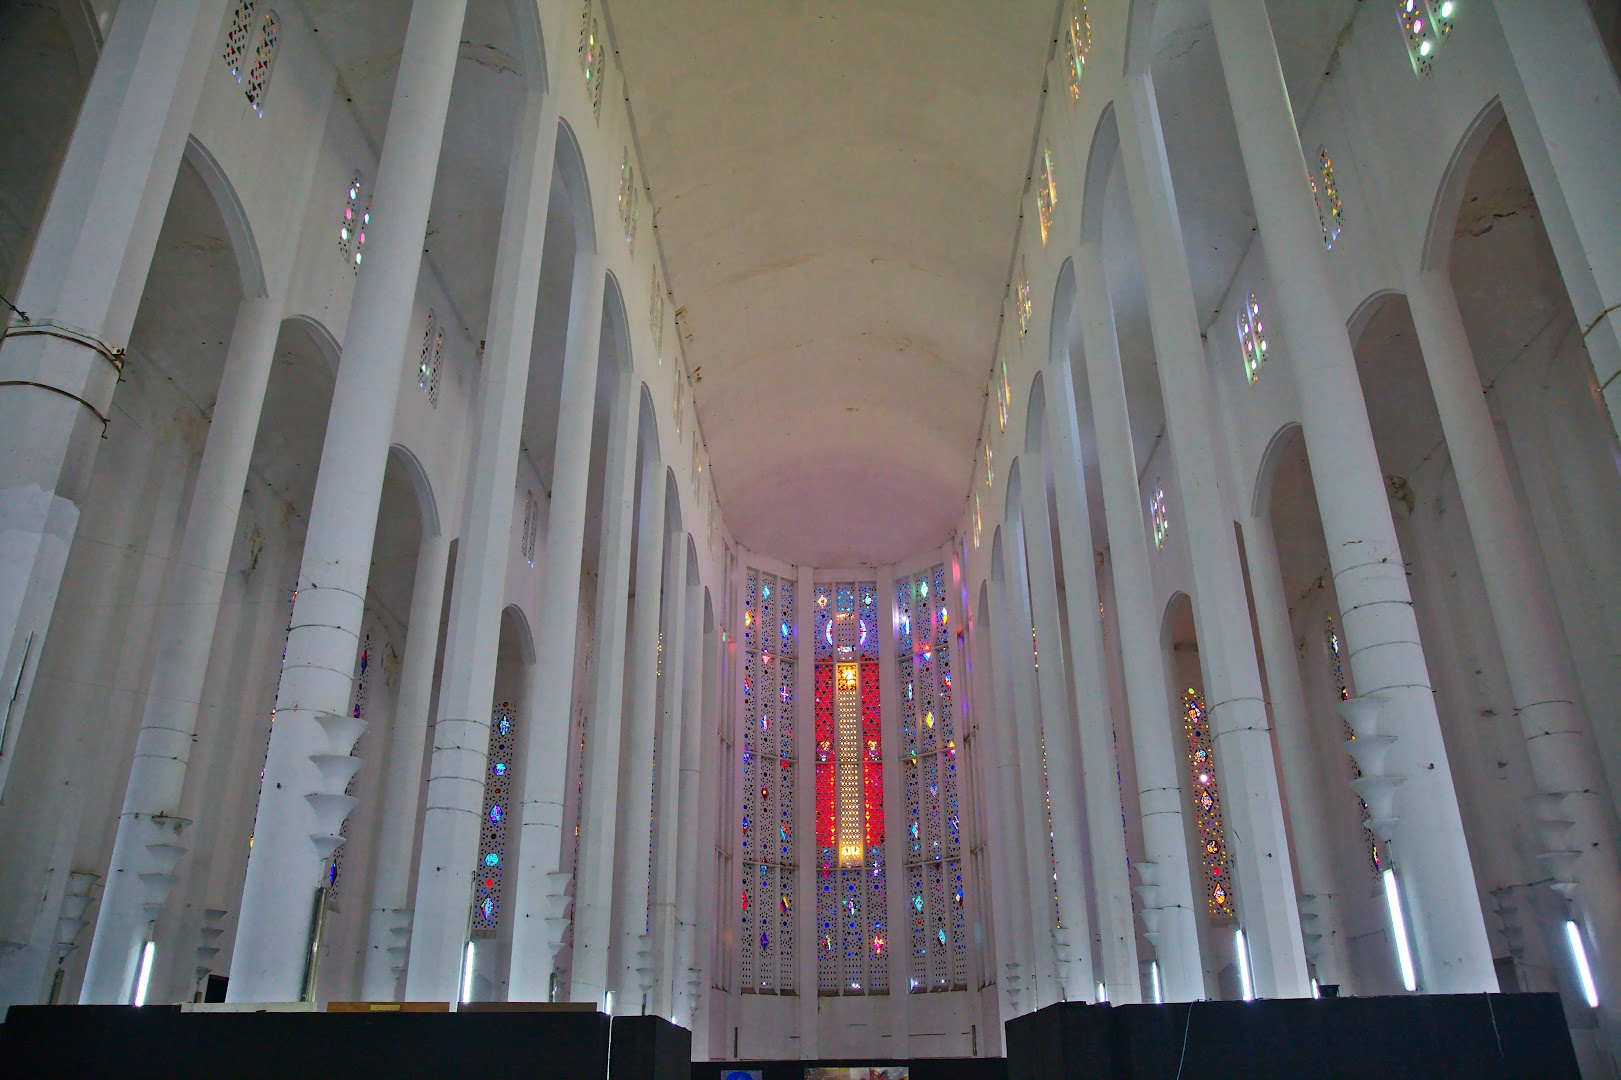 Nowadays the cathedral is used for exhibitions